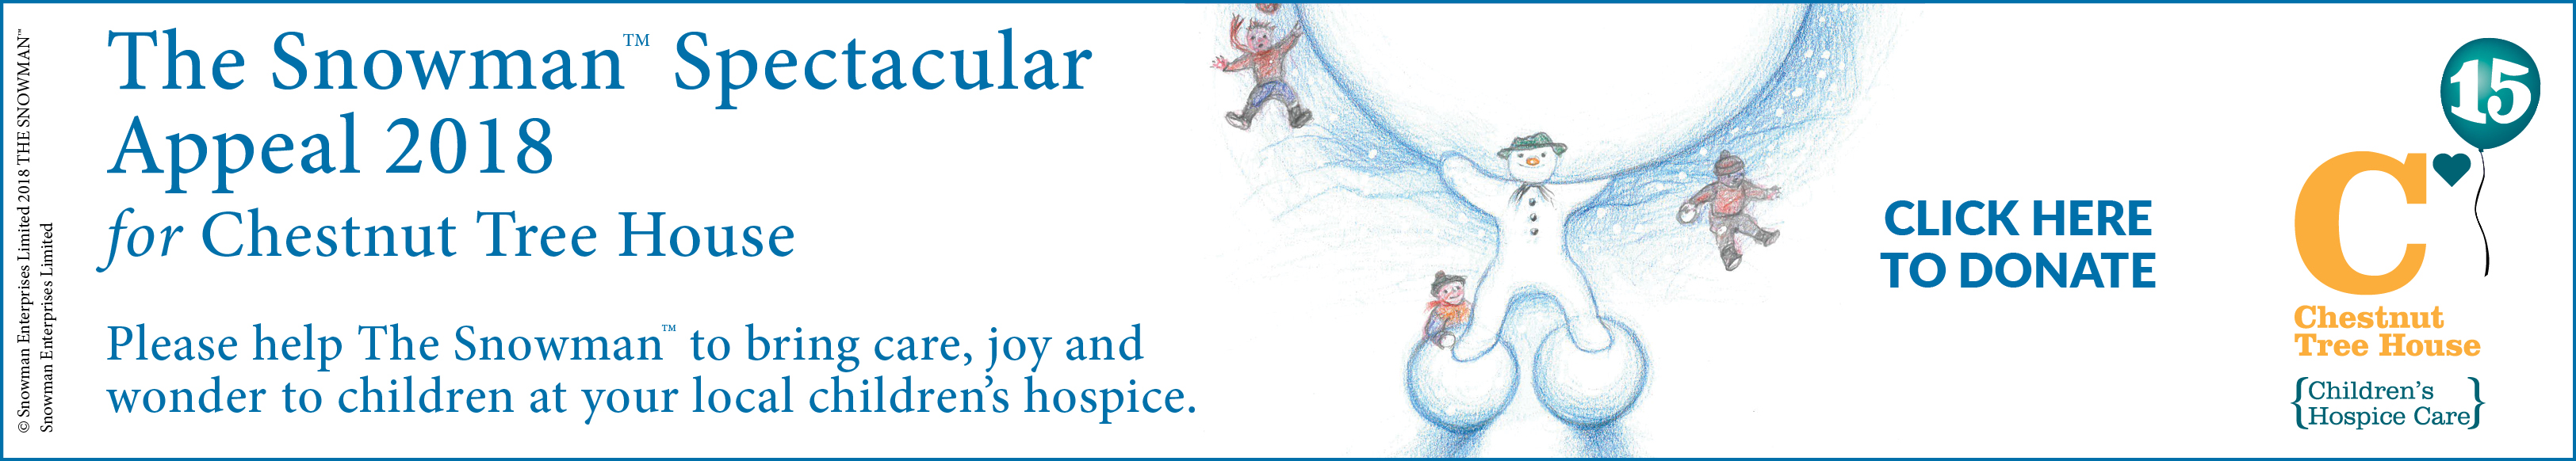 Chestnut Tree House - The Snowman Spectacular Appeal